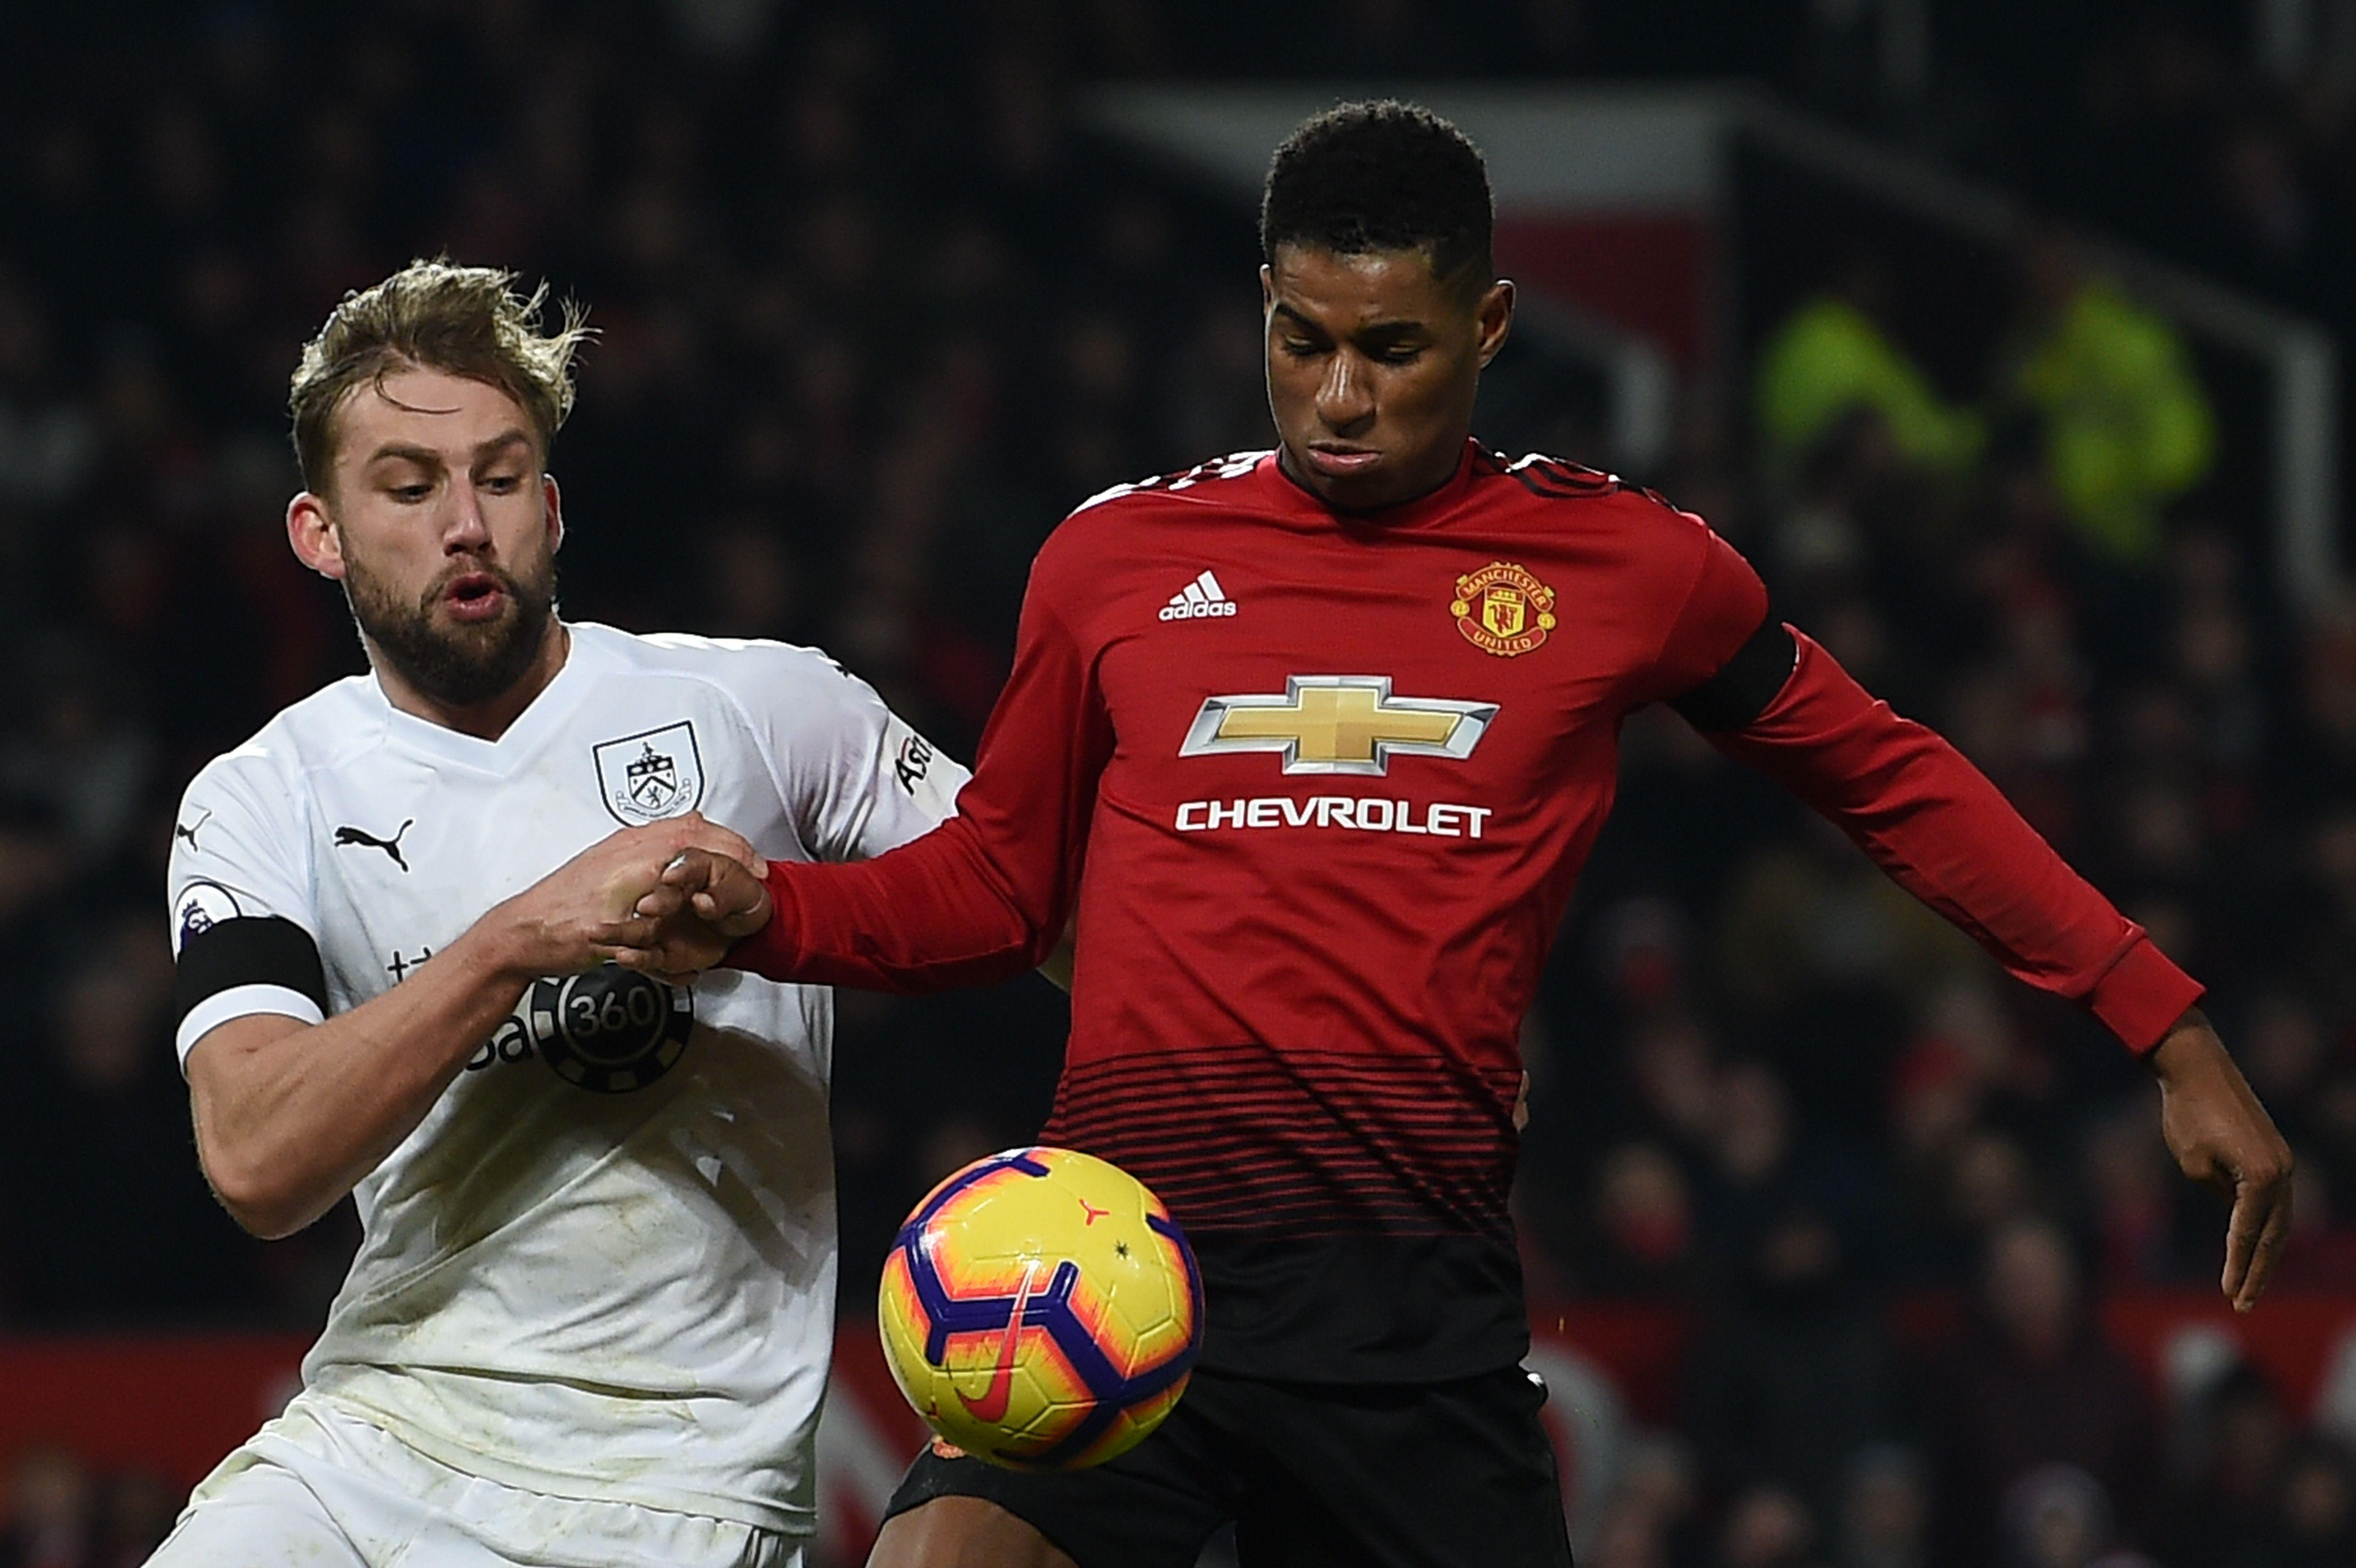 Real have not given up hope of landing United star Rashford over the summer